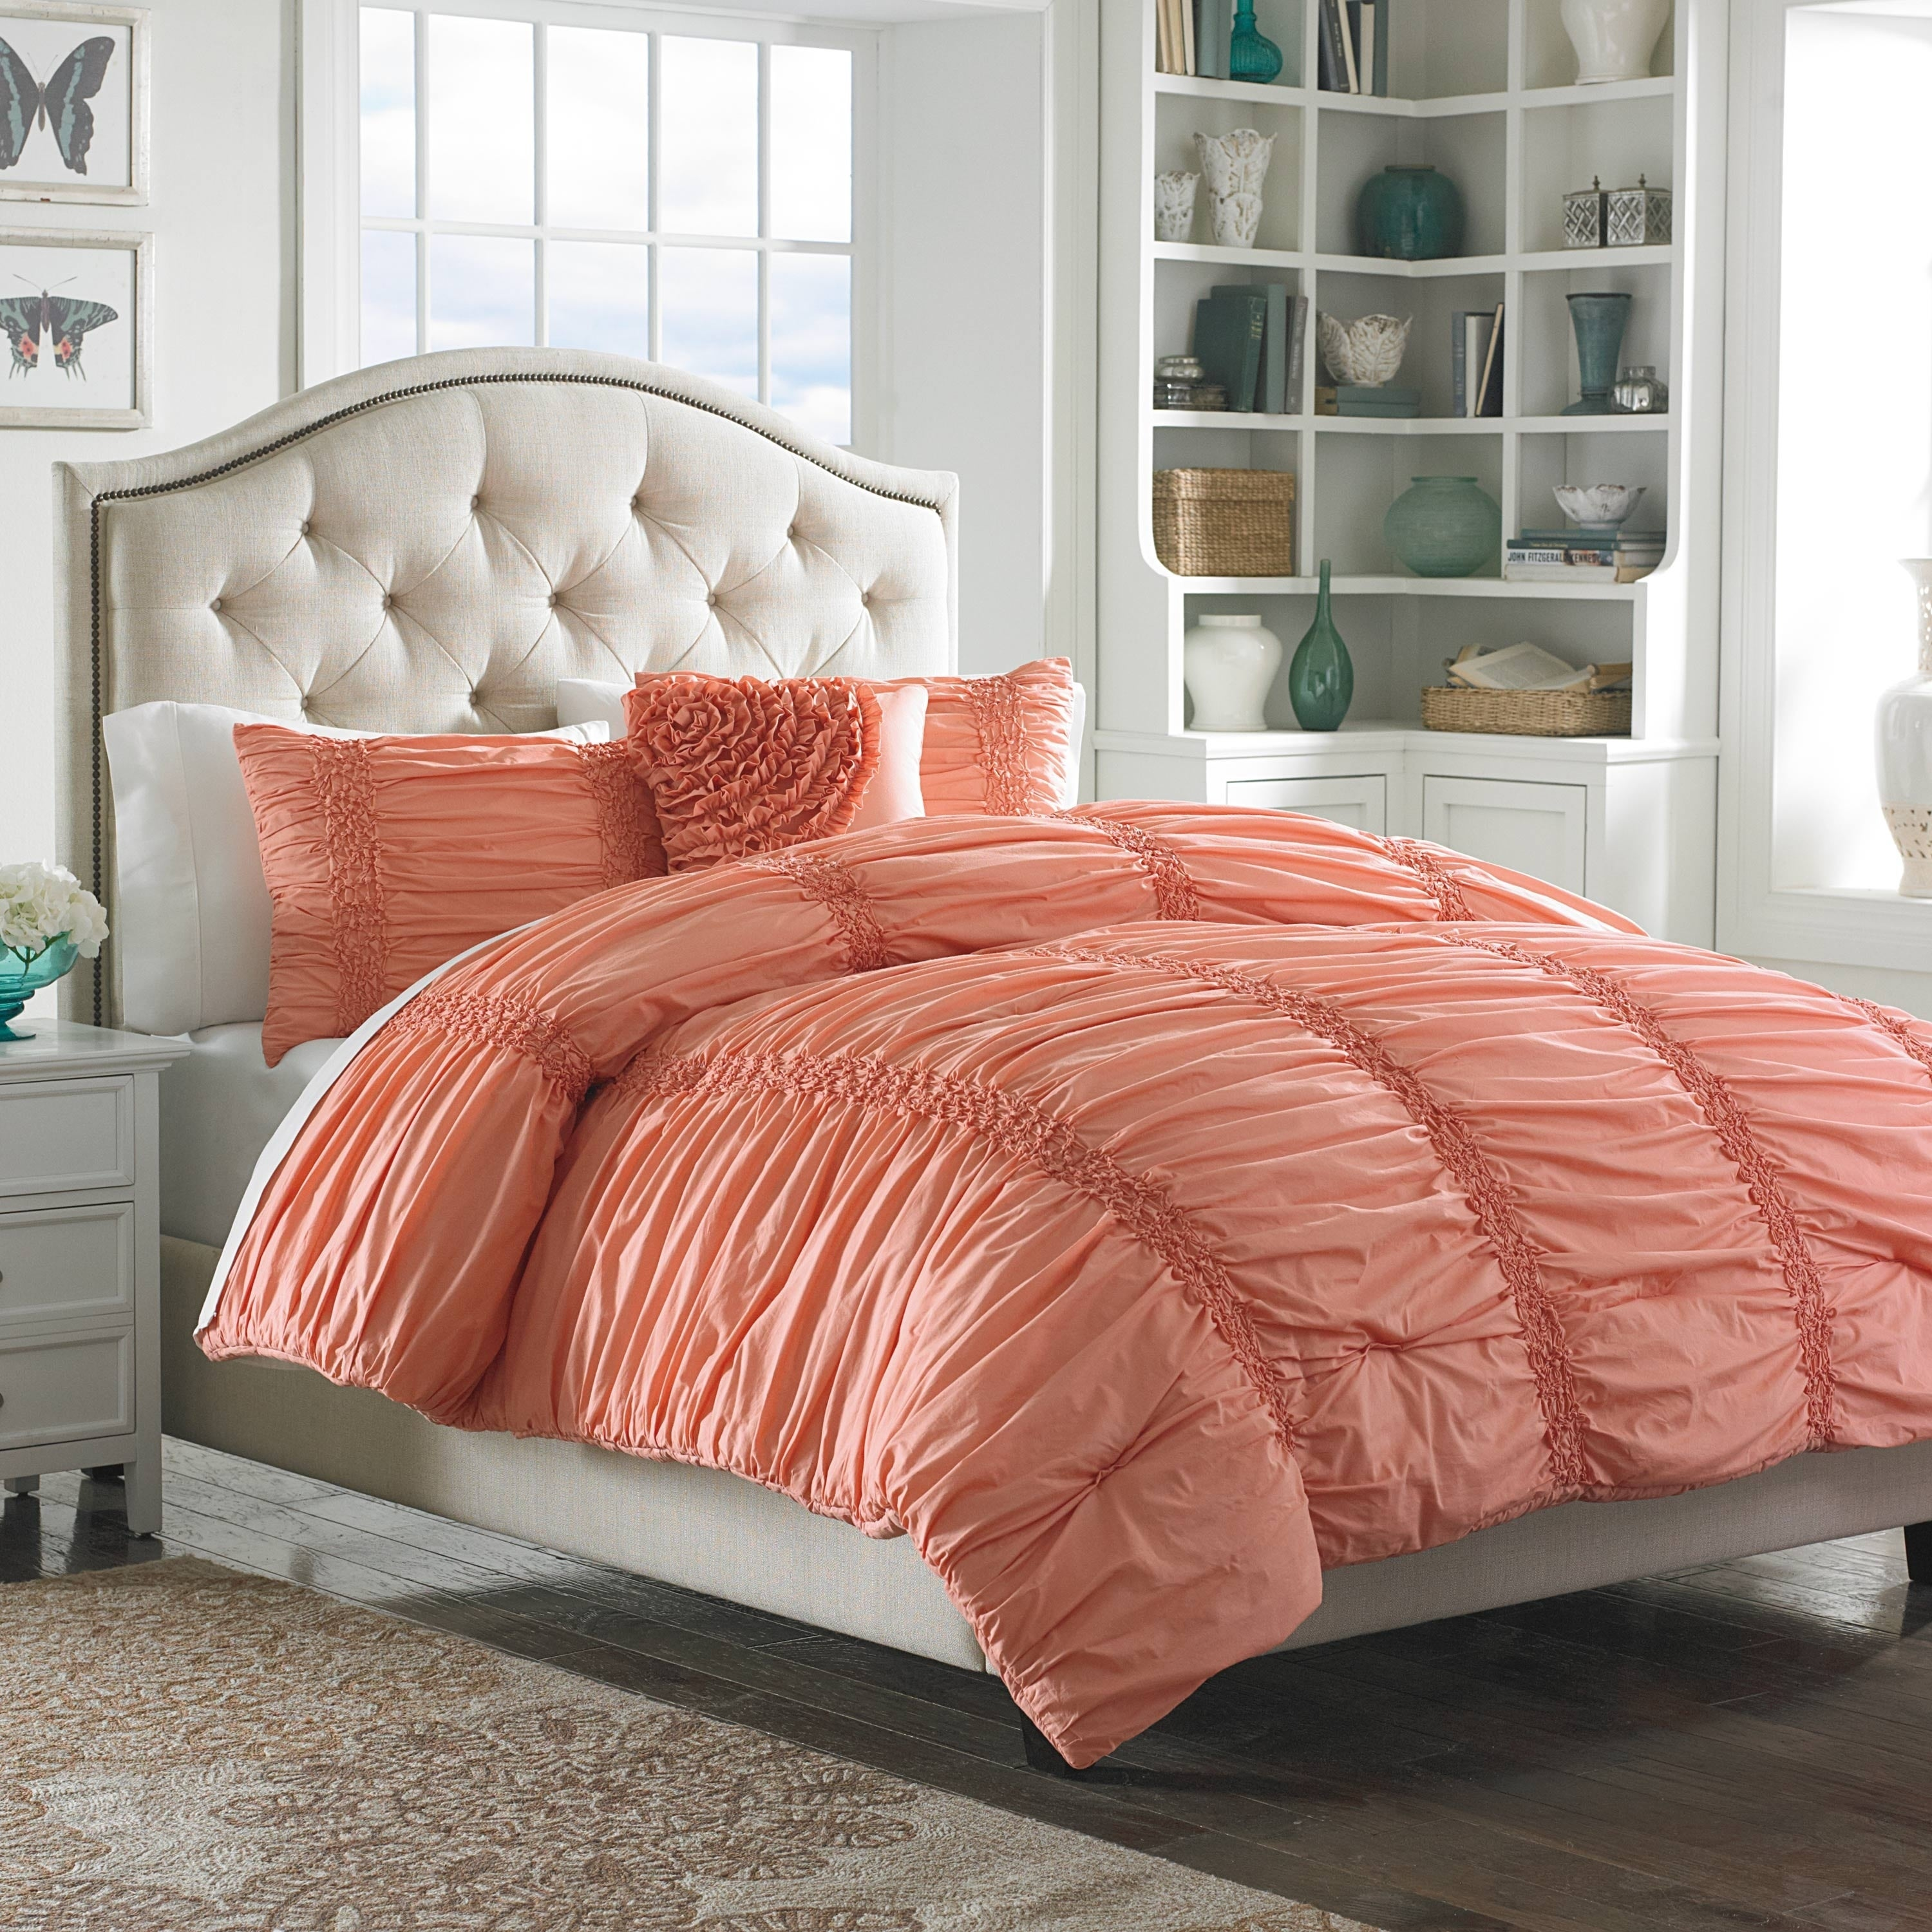 Full Queen Mary Janes Home Sweet Blooms Quilt Pink